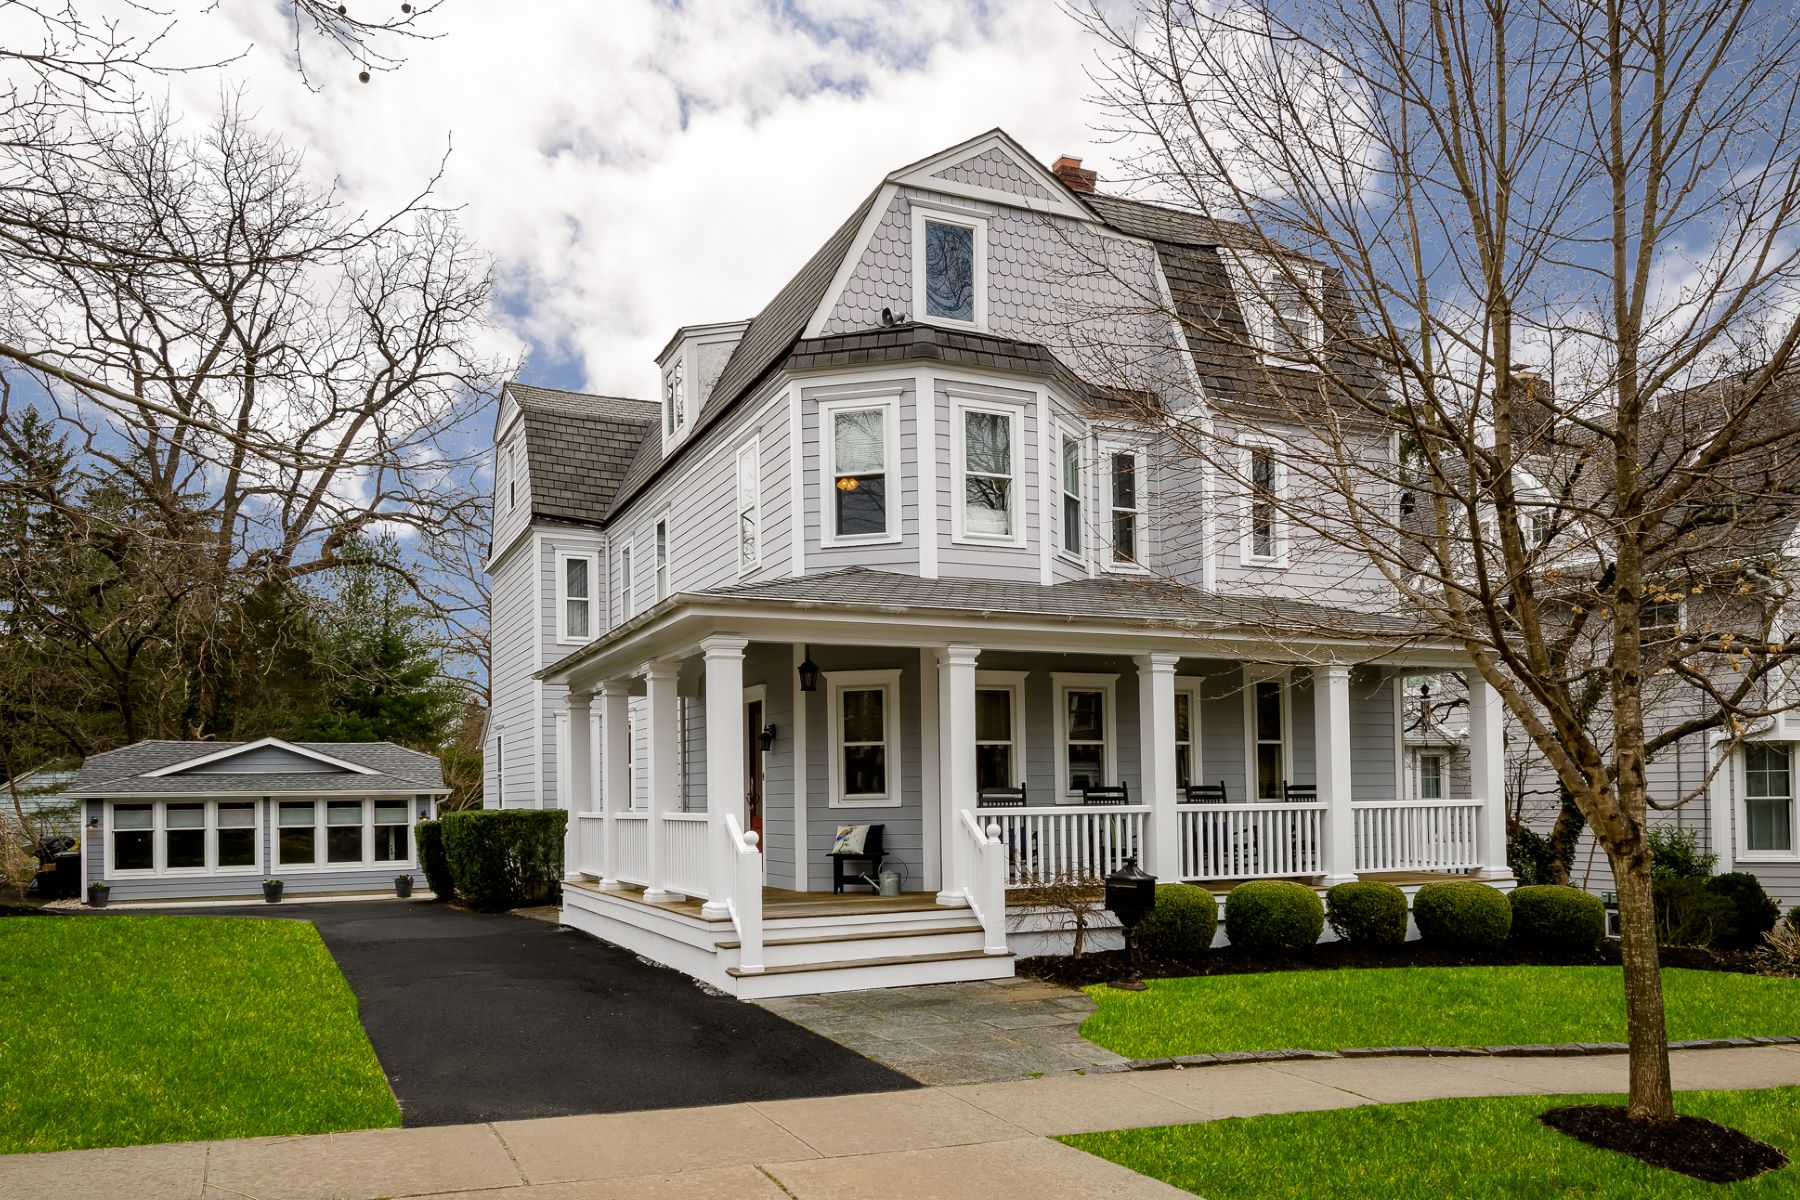 Property for Sale at In-town Perfection! 20 Murray Place, Princeton, New Jersey 08540 United States